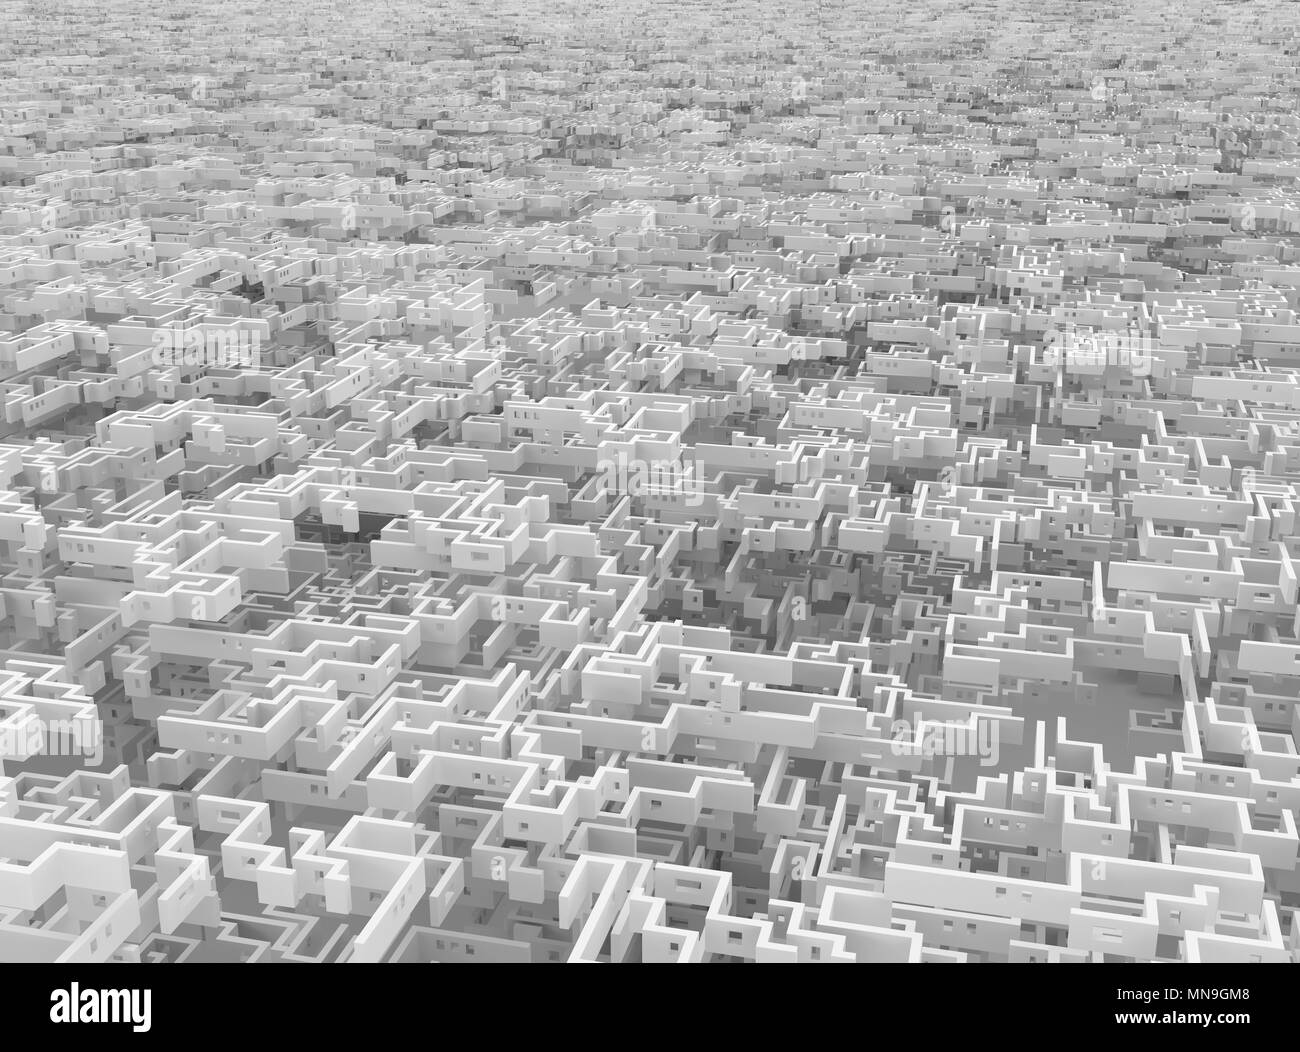 White wall labyrinth endless giant maze surreal, 3d illustration, horizontal background - Stock Image